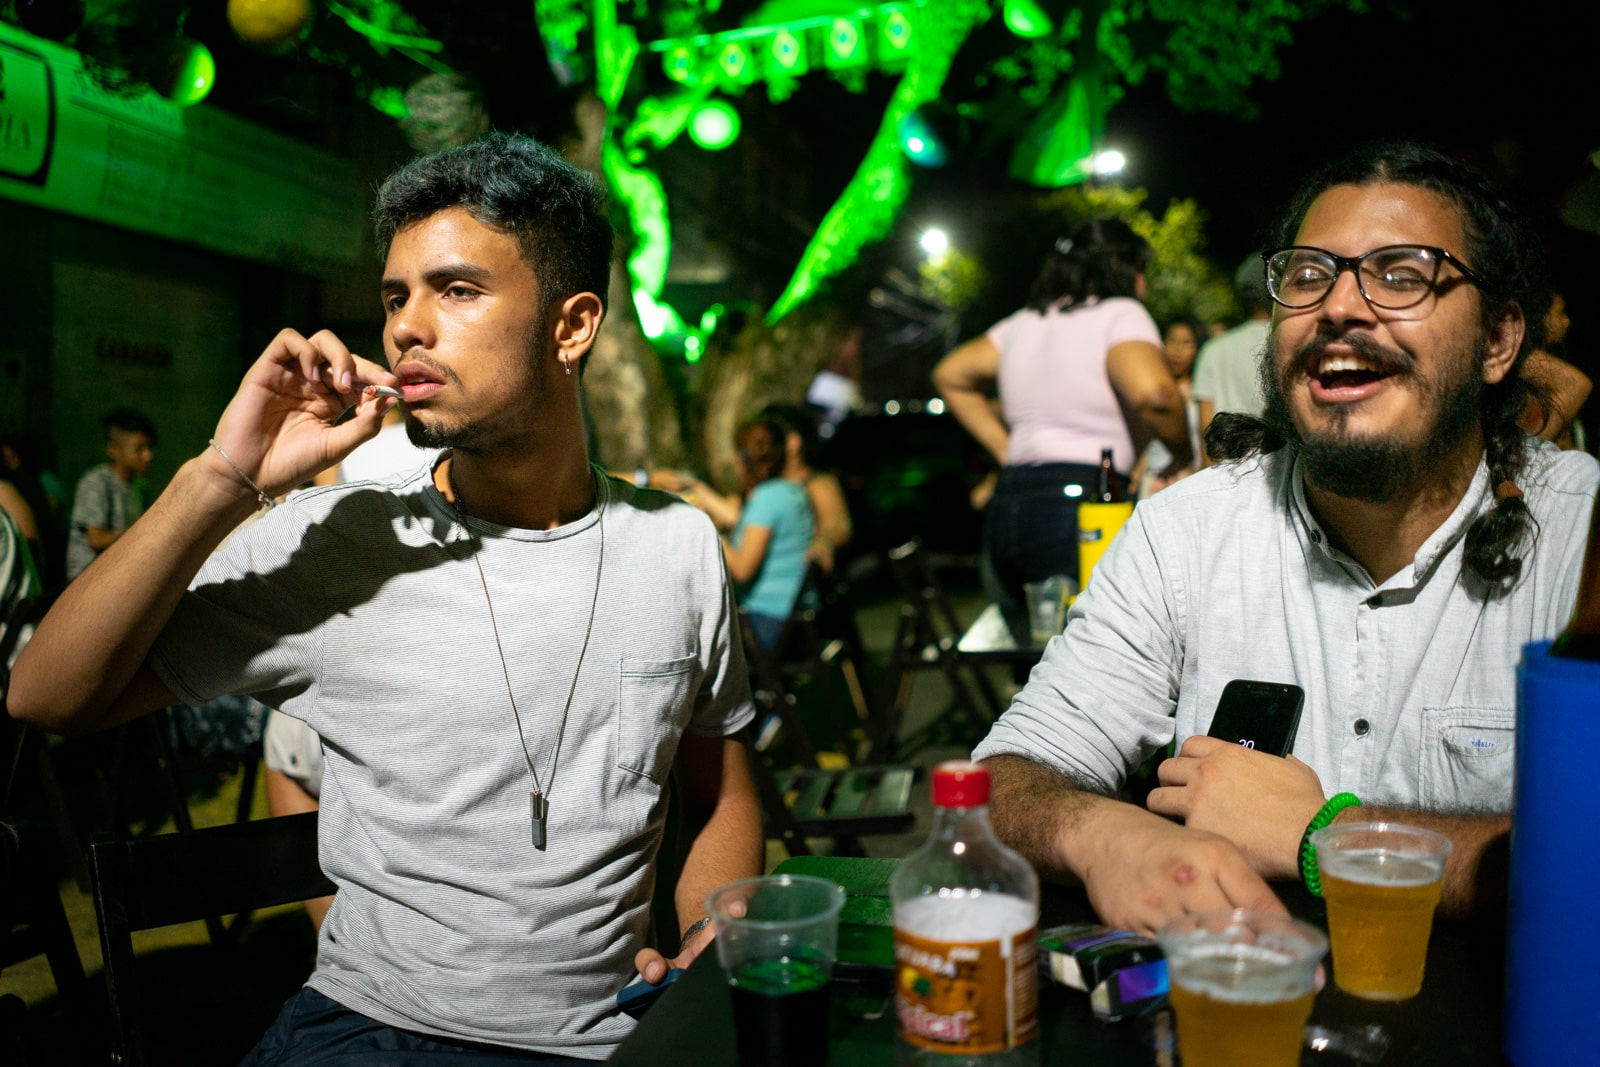 Reflections - Beers and singing at an outdoors bar in Manaus, Amazonas, Brazil - Lost With Purpose travel blog